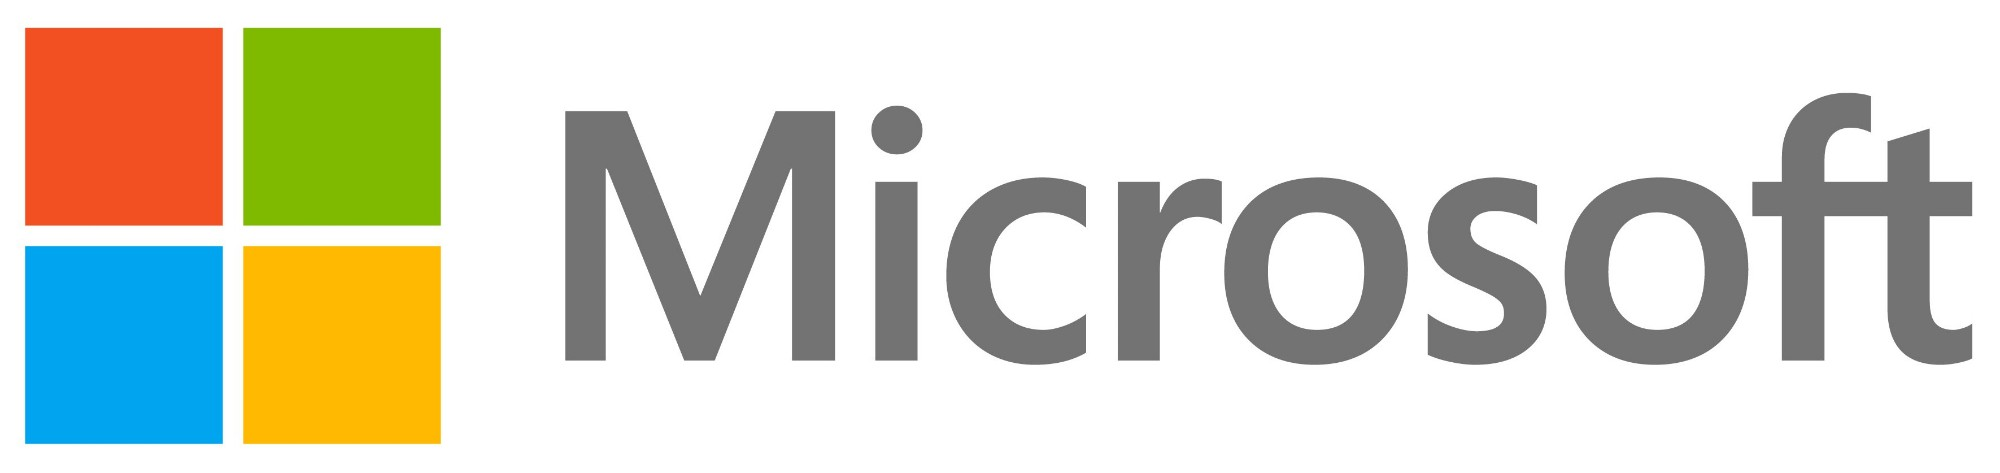 MICROSOFT WINDOWS E3 PER DEVICE